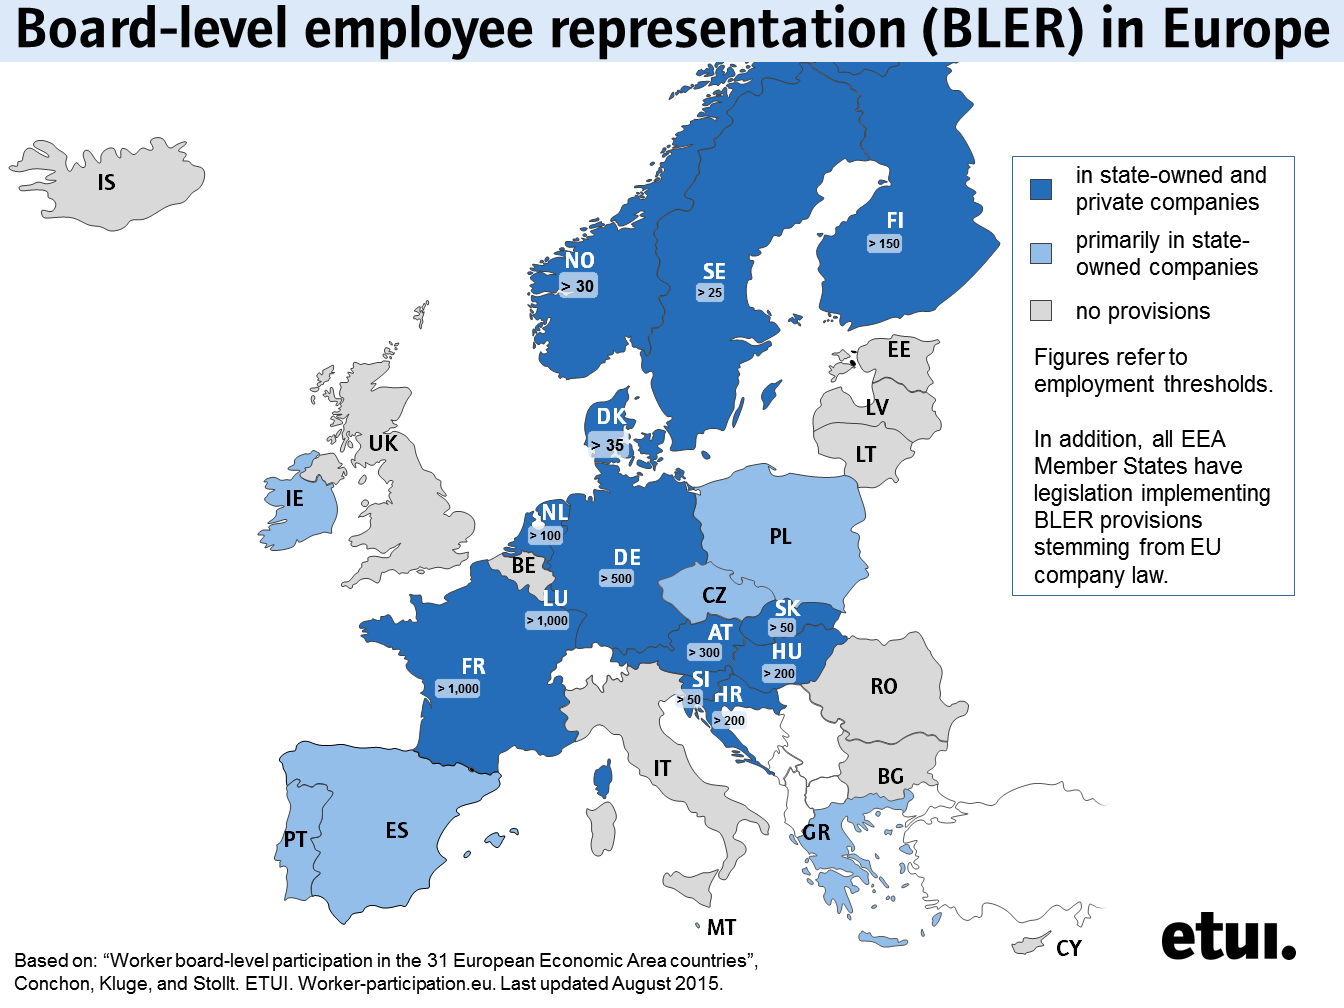 the etui has updated its map on board level employee representation in europe which now provides the latest state of affairs in europe and thresholds in